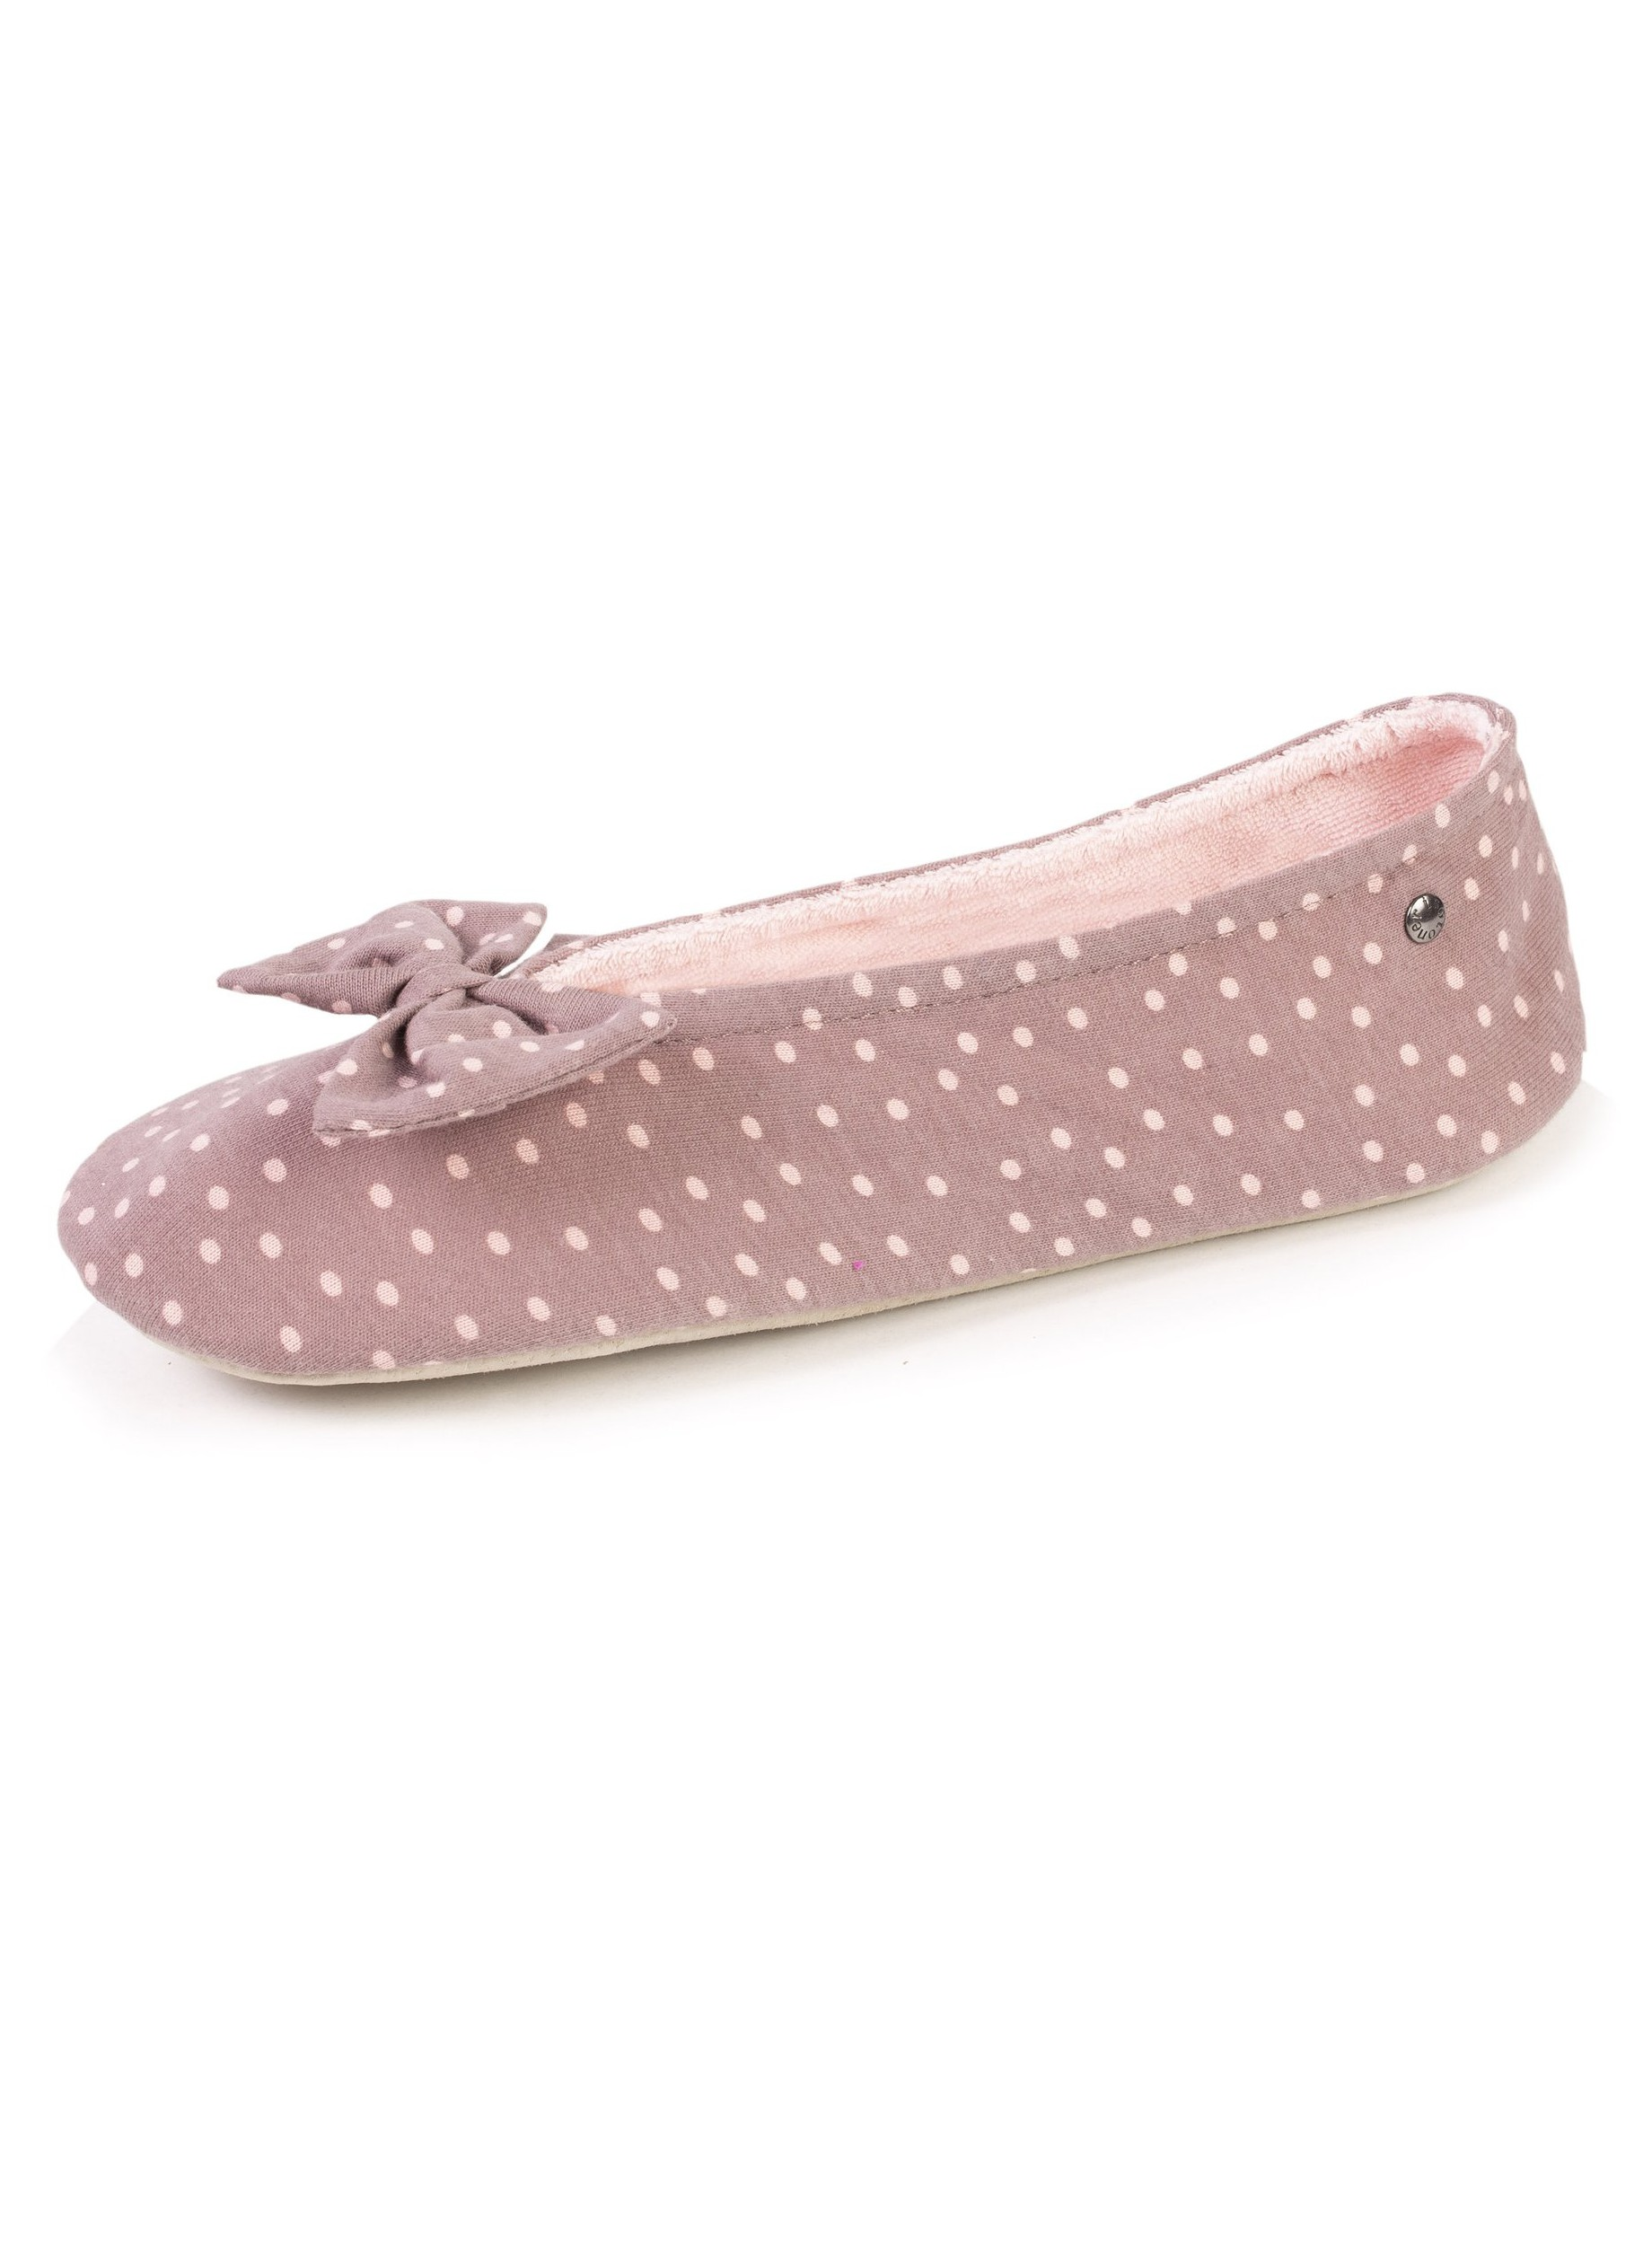 Isotoner chaussons ballerines à pois taupe